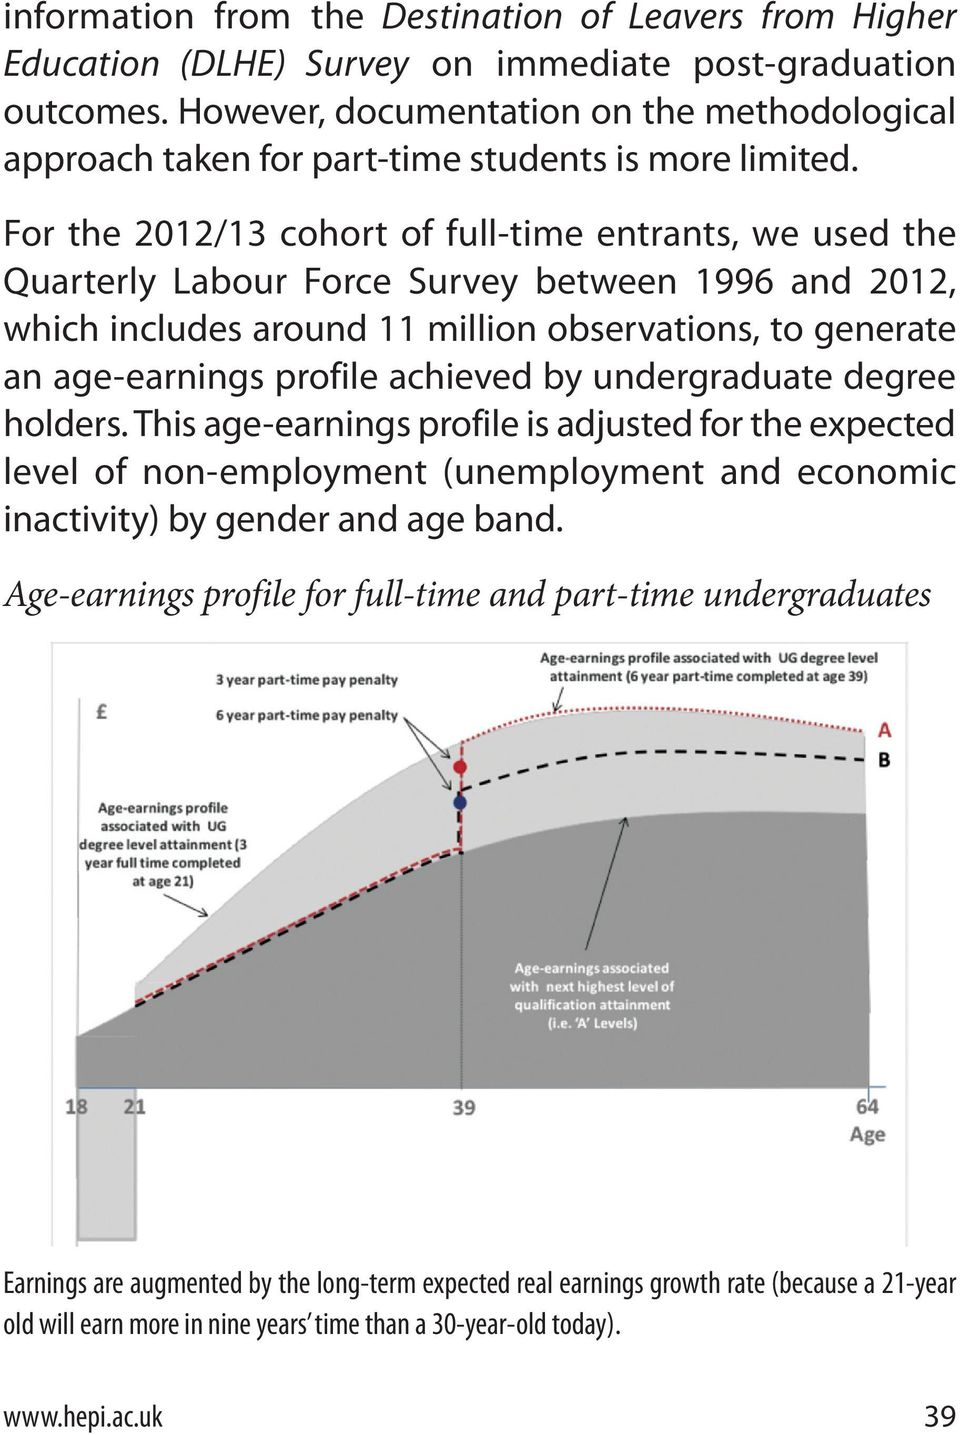 For the 2012/13 cohort of full-time entrants, we used the Quarterly Labour Force Survey between 1996 and 2012, which includes around 11 million observations, to generate an age-earnings profile